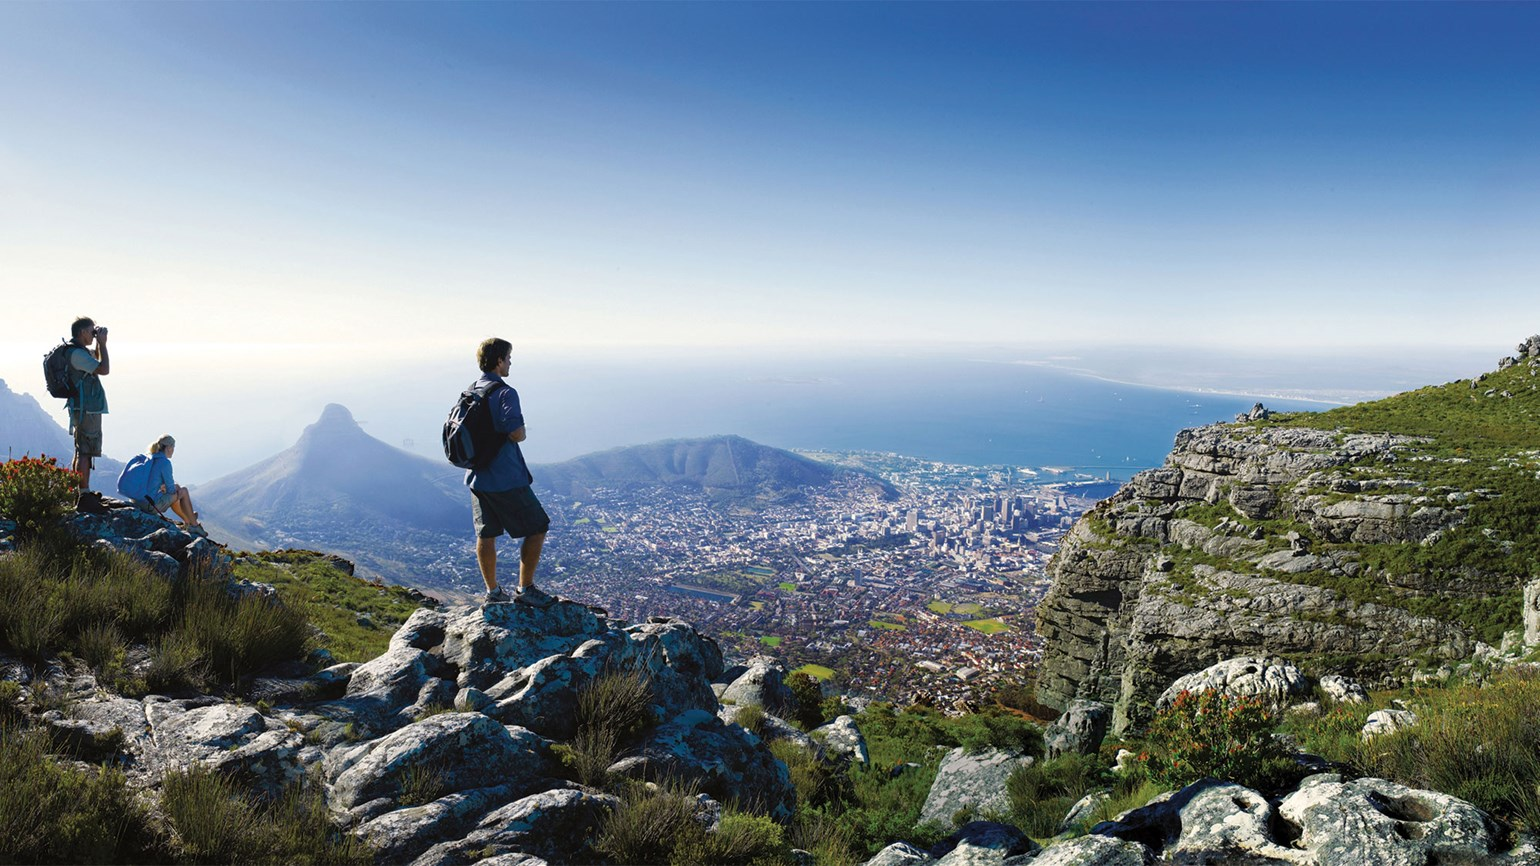 Tourists encouraged to visit Cape Town despite severe drought